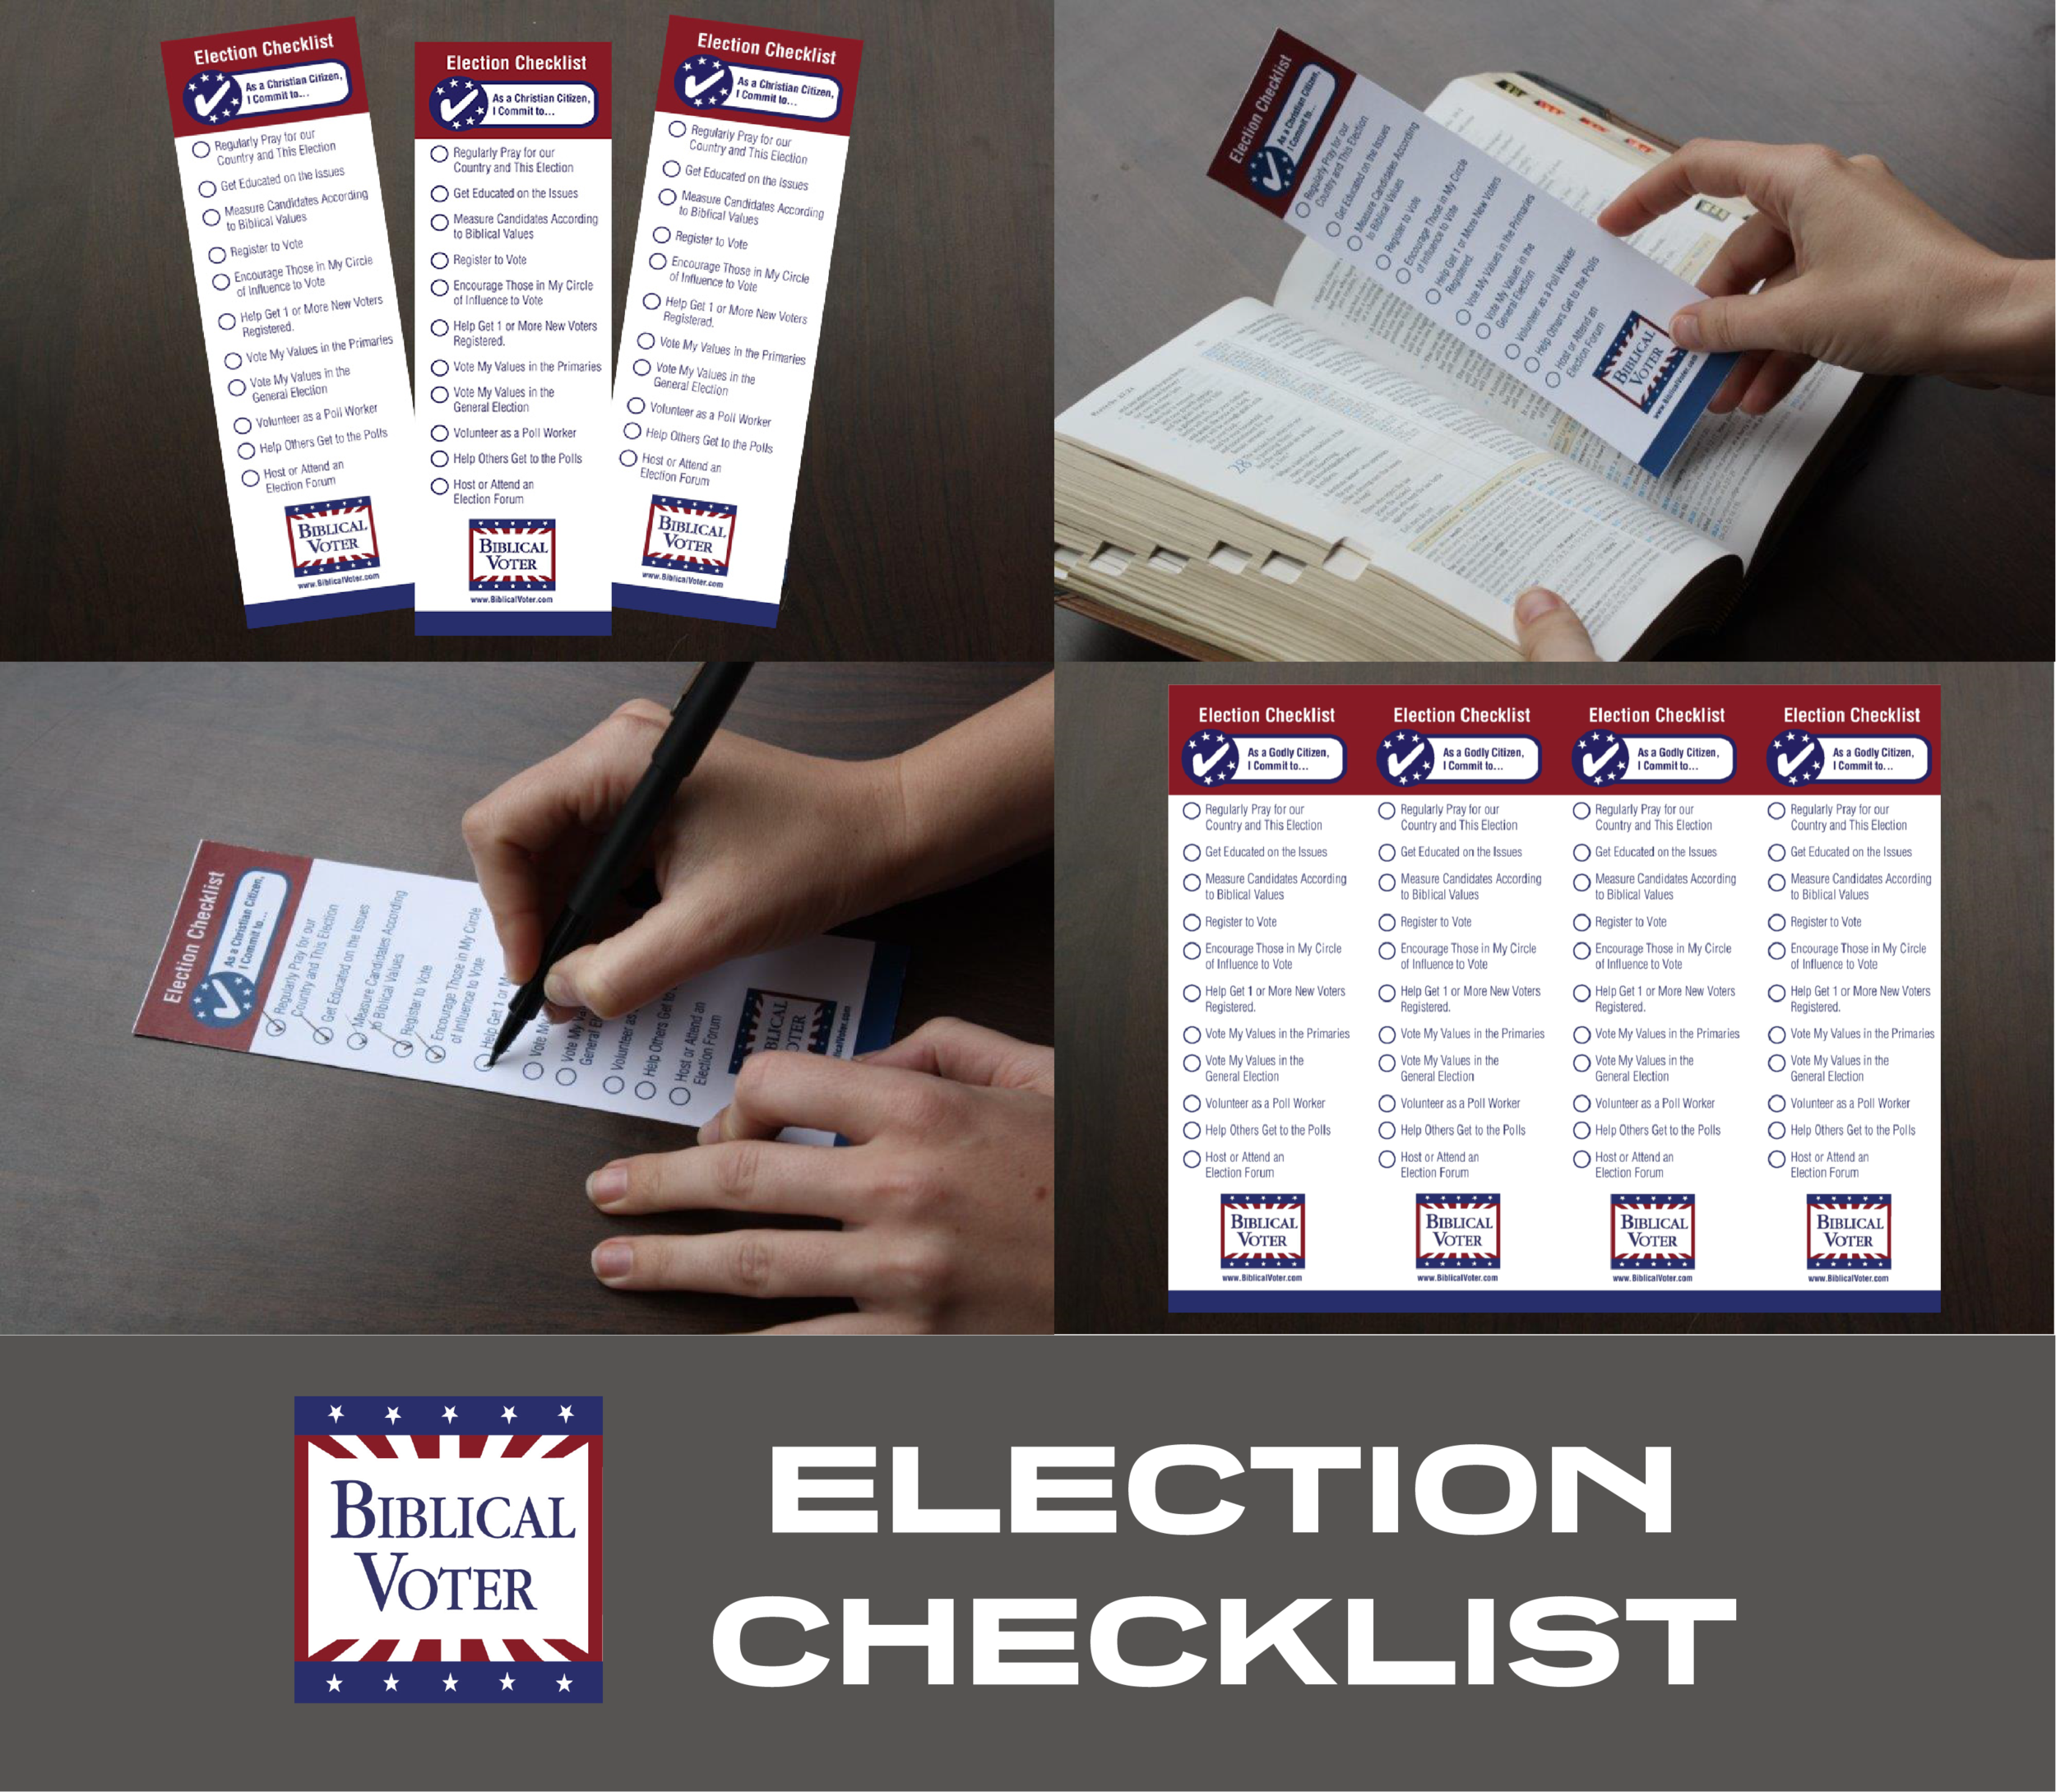 Election Checklist Bookmark - The Election Checklist Bookmark features the Top 11 To-Dos for Every Election. Simple effective list of actions to share with family & friends